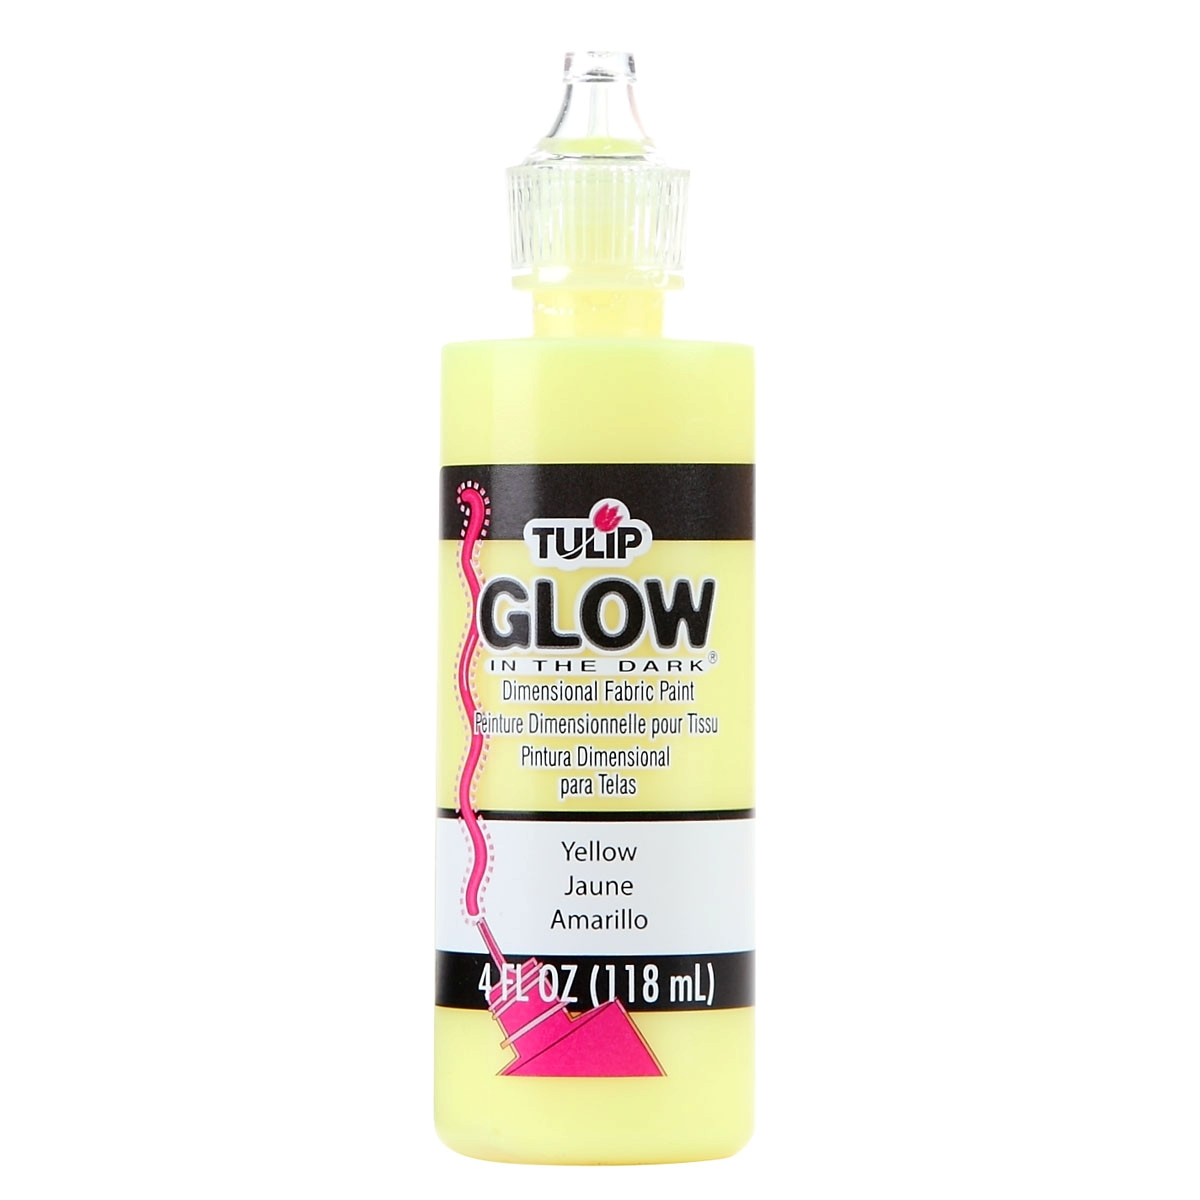 Picture of Tulip Dimensional Fabric Paint Glow Yellow 4 oz.